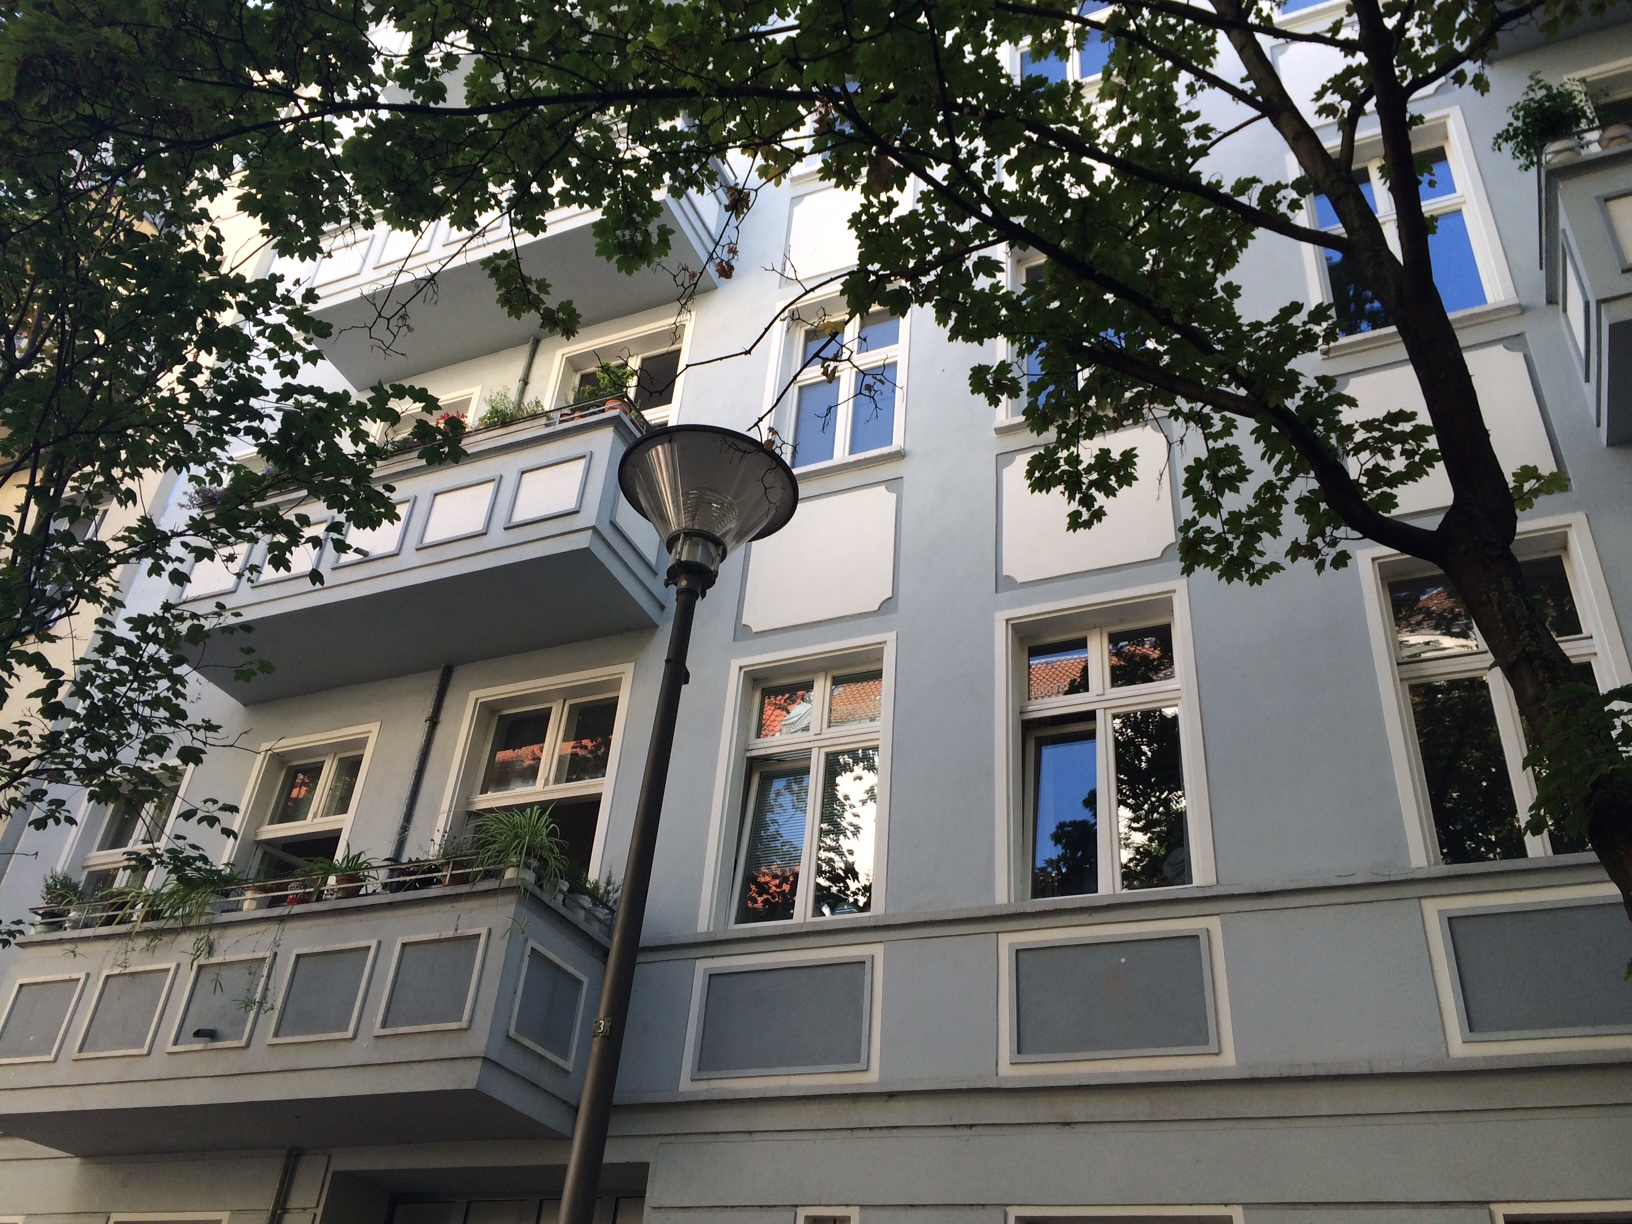 2 pi ces enti rement r nov en plein friedrichshain appartement - Acheter appartement berlin ...